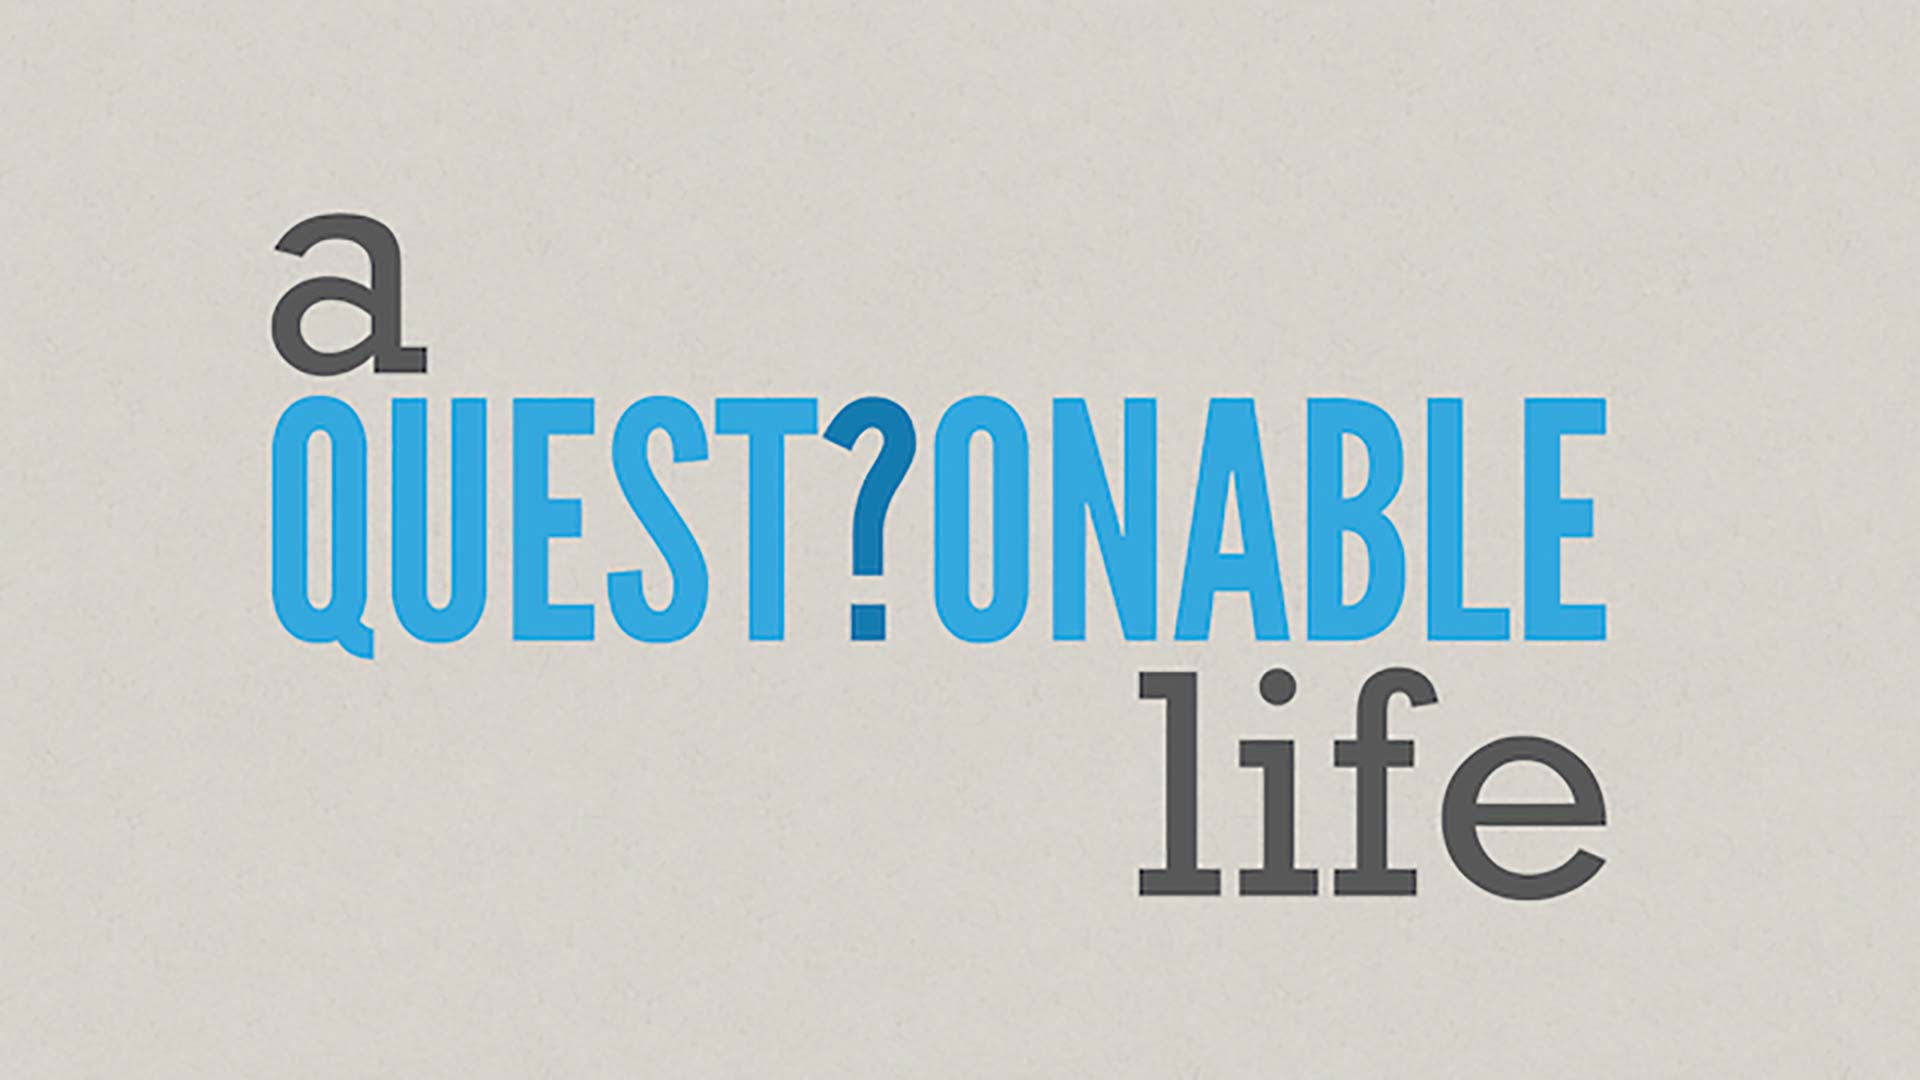 A Questionable Life